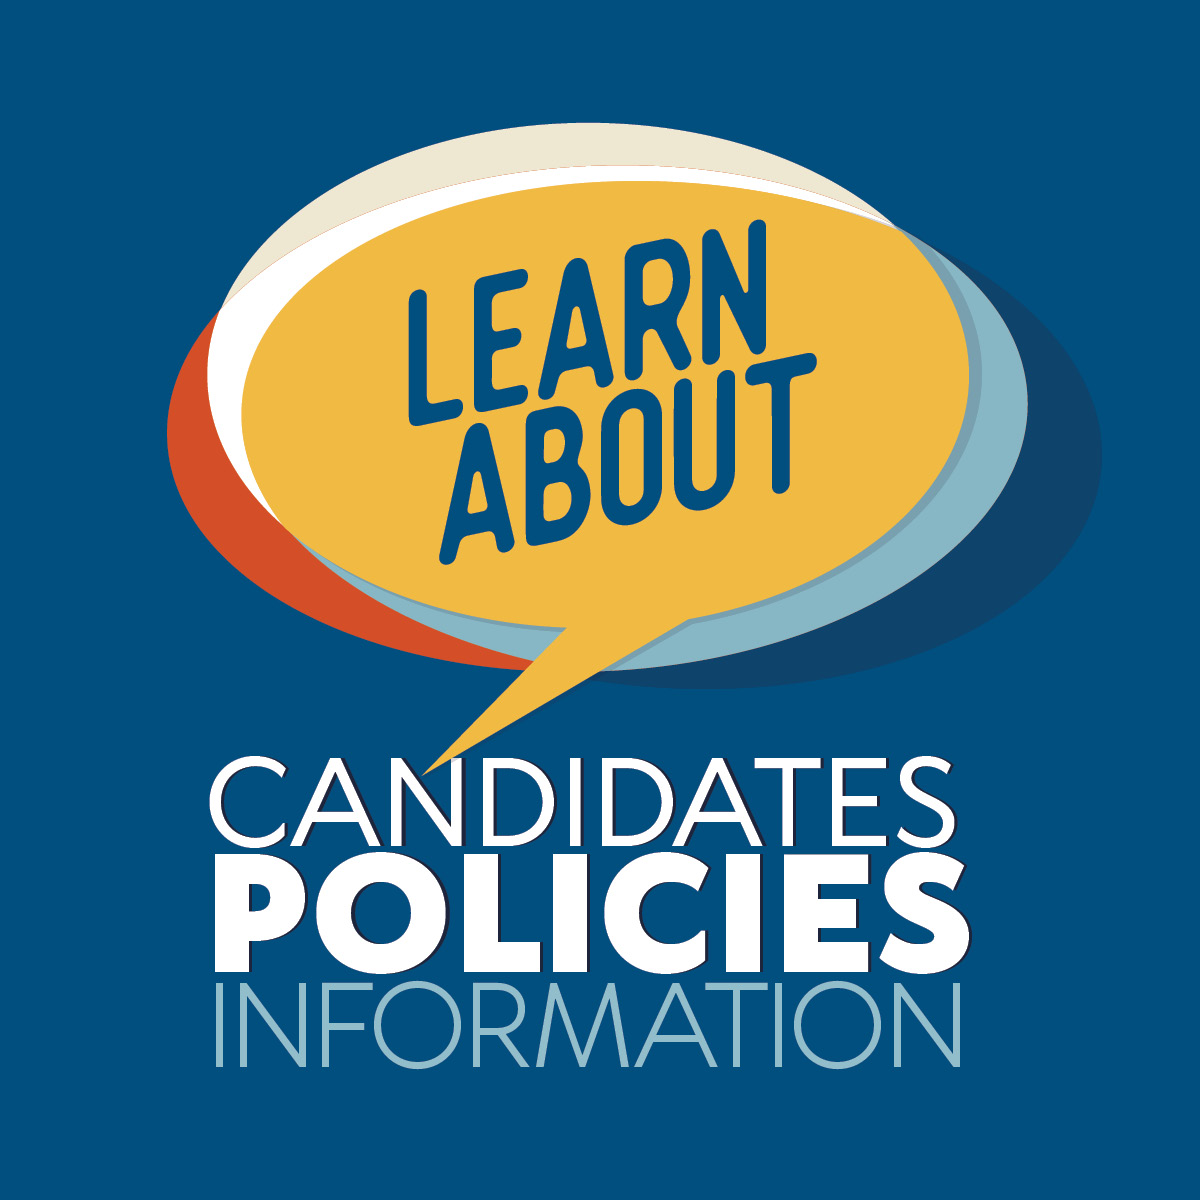 LEARN ABOUT CANDIDATES